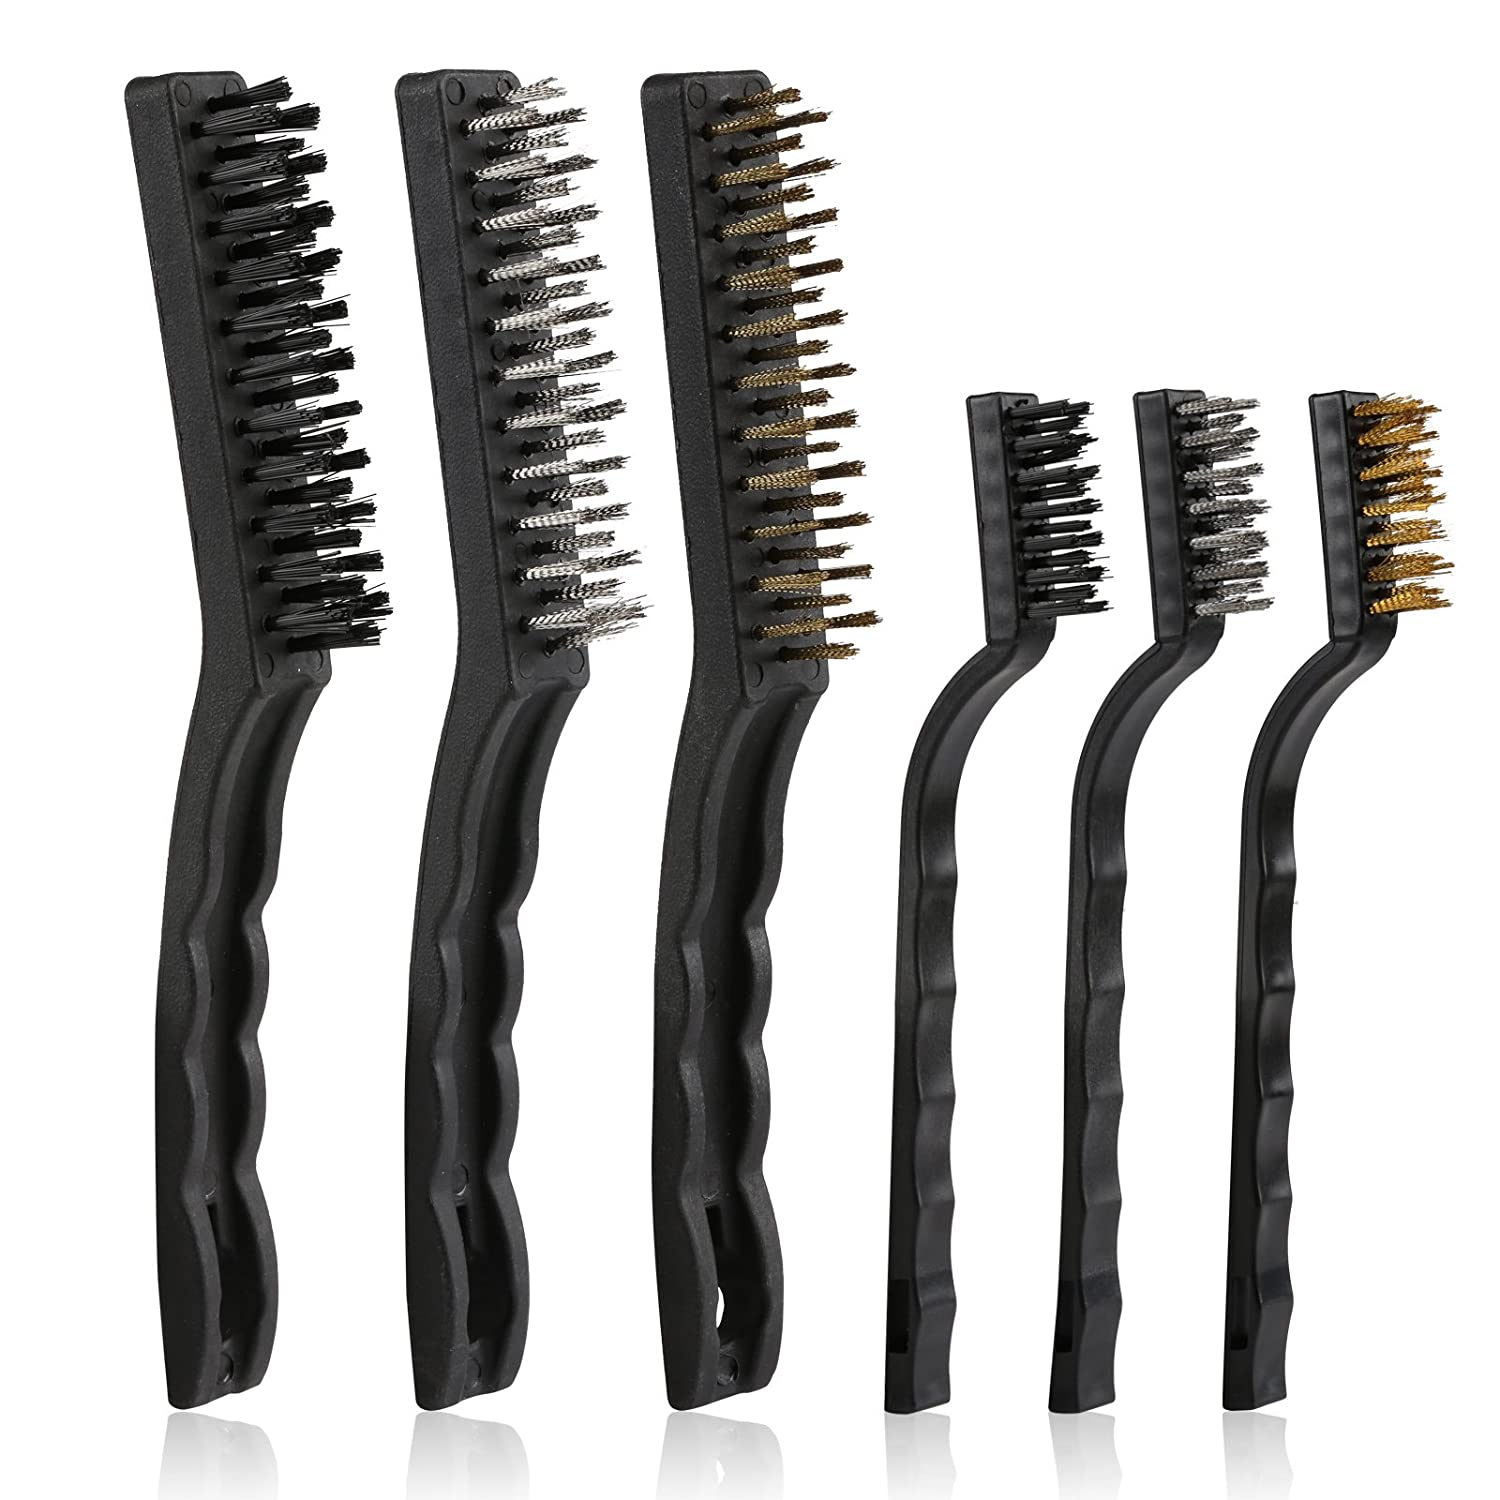 12 Stainless Steel Wire Brush Cleaning Detailing Rust Paint Remove Tooth Brushes